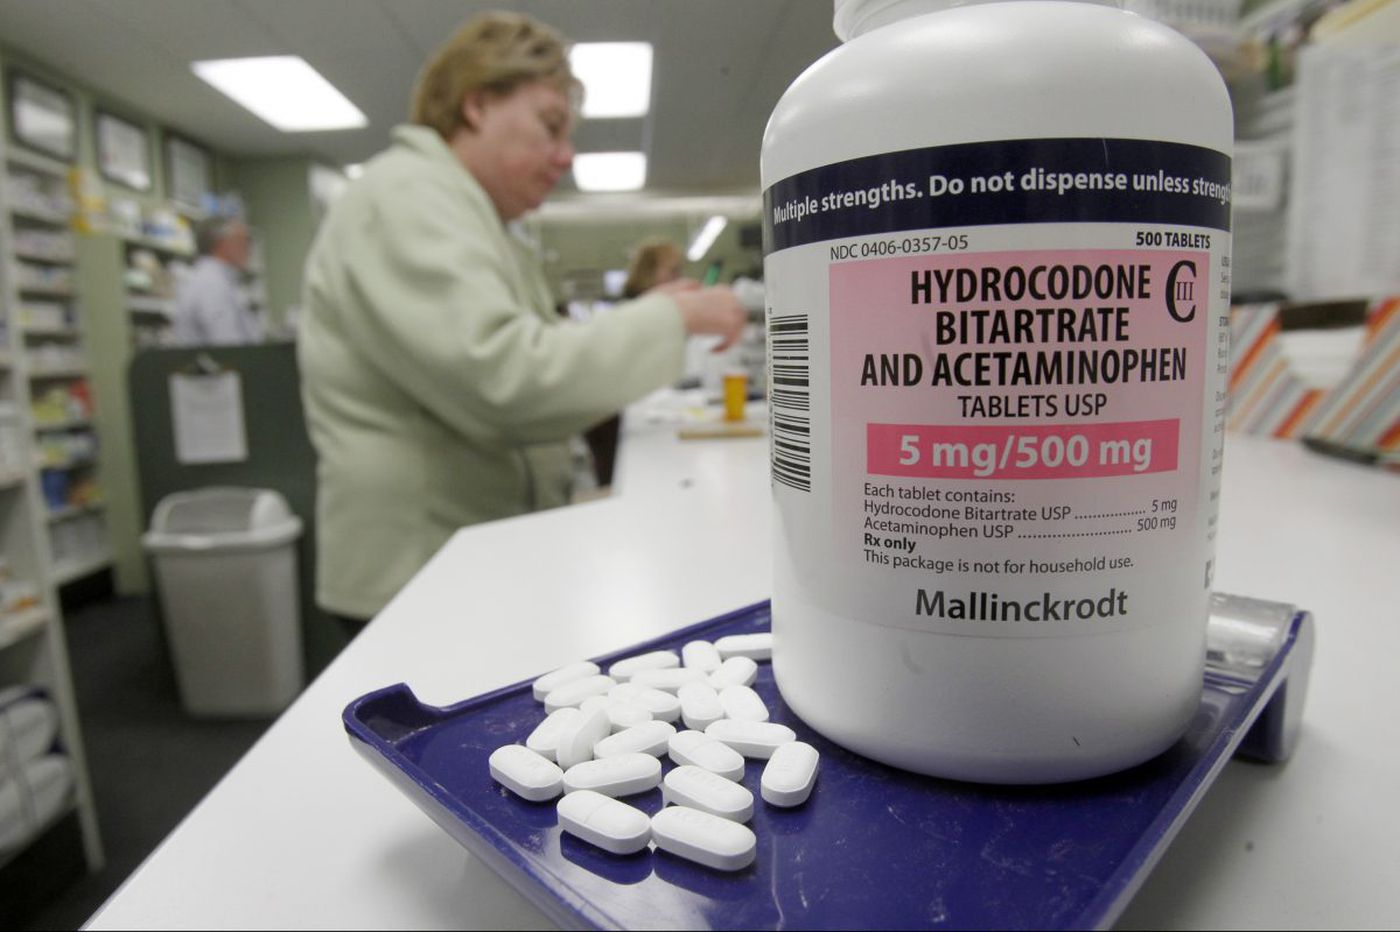 Most opioid users stay on drugs even after overdosing, Pa. Medicaid study finds